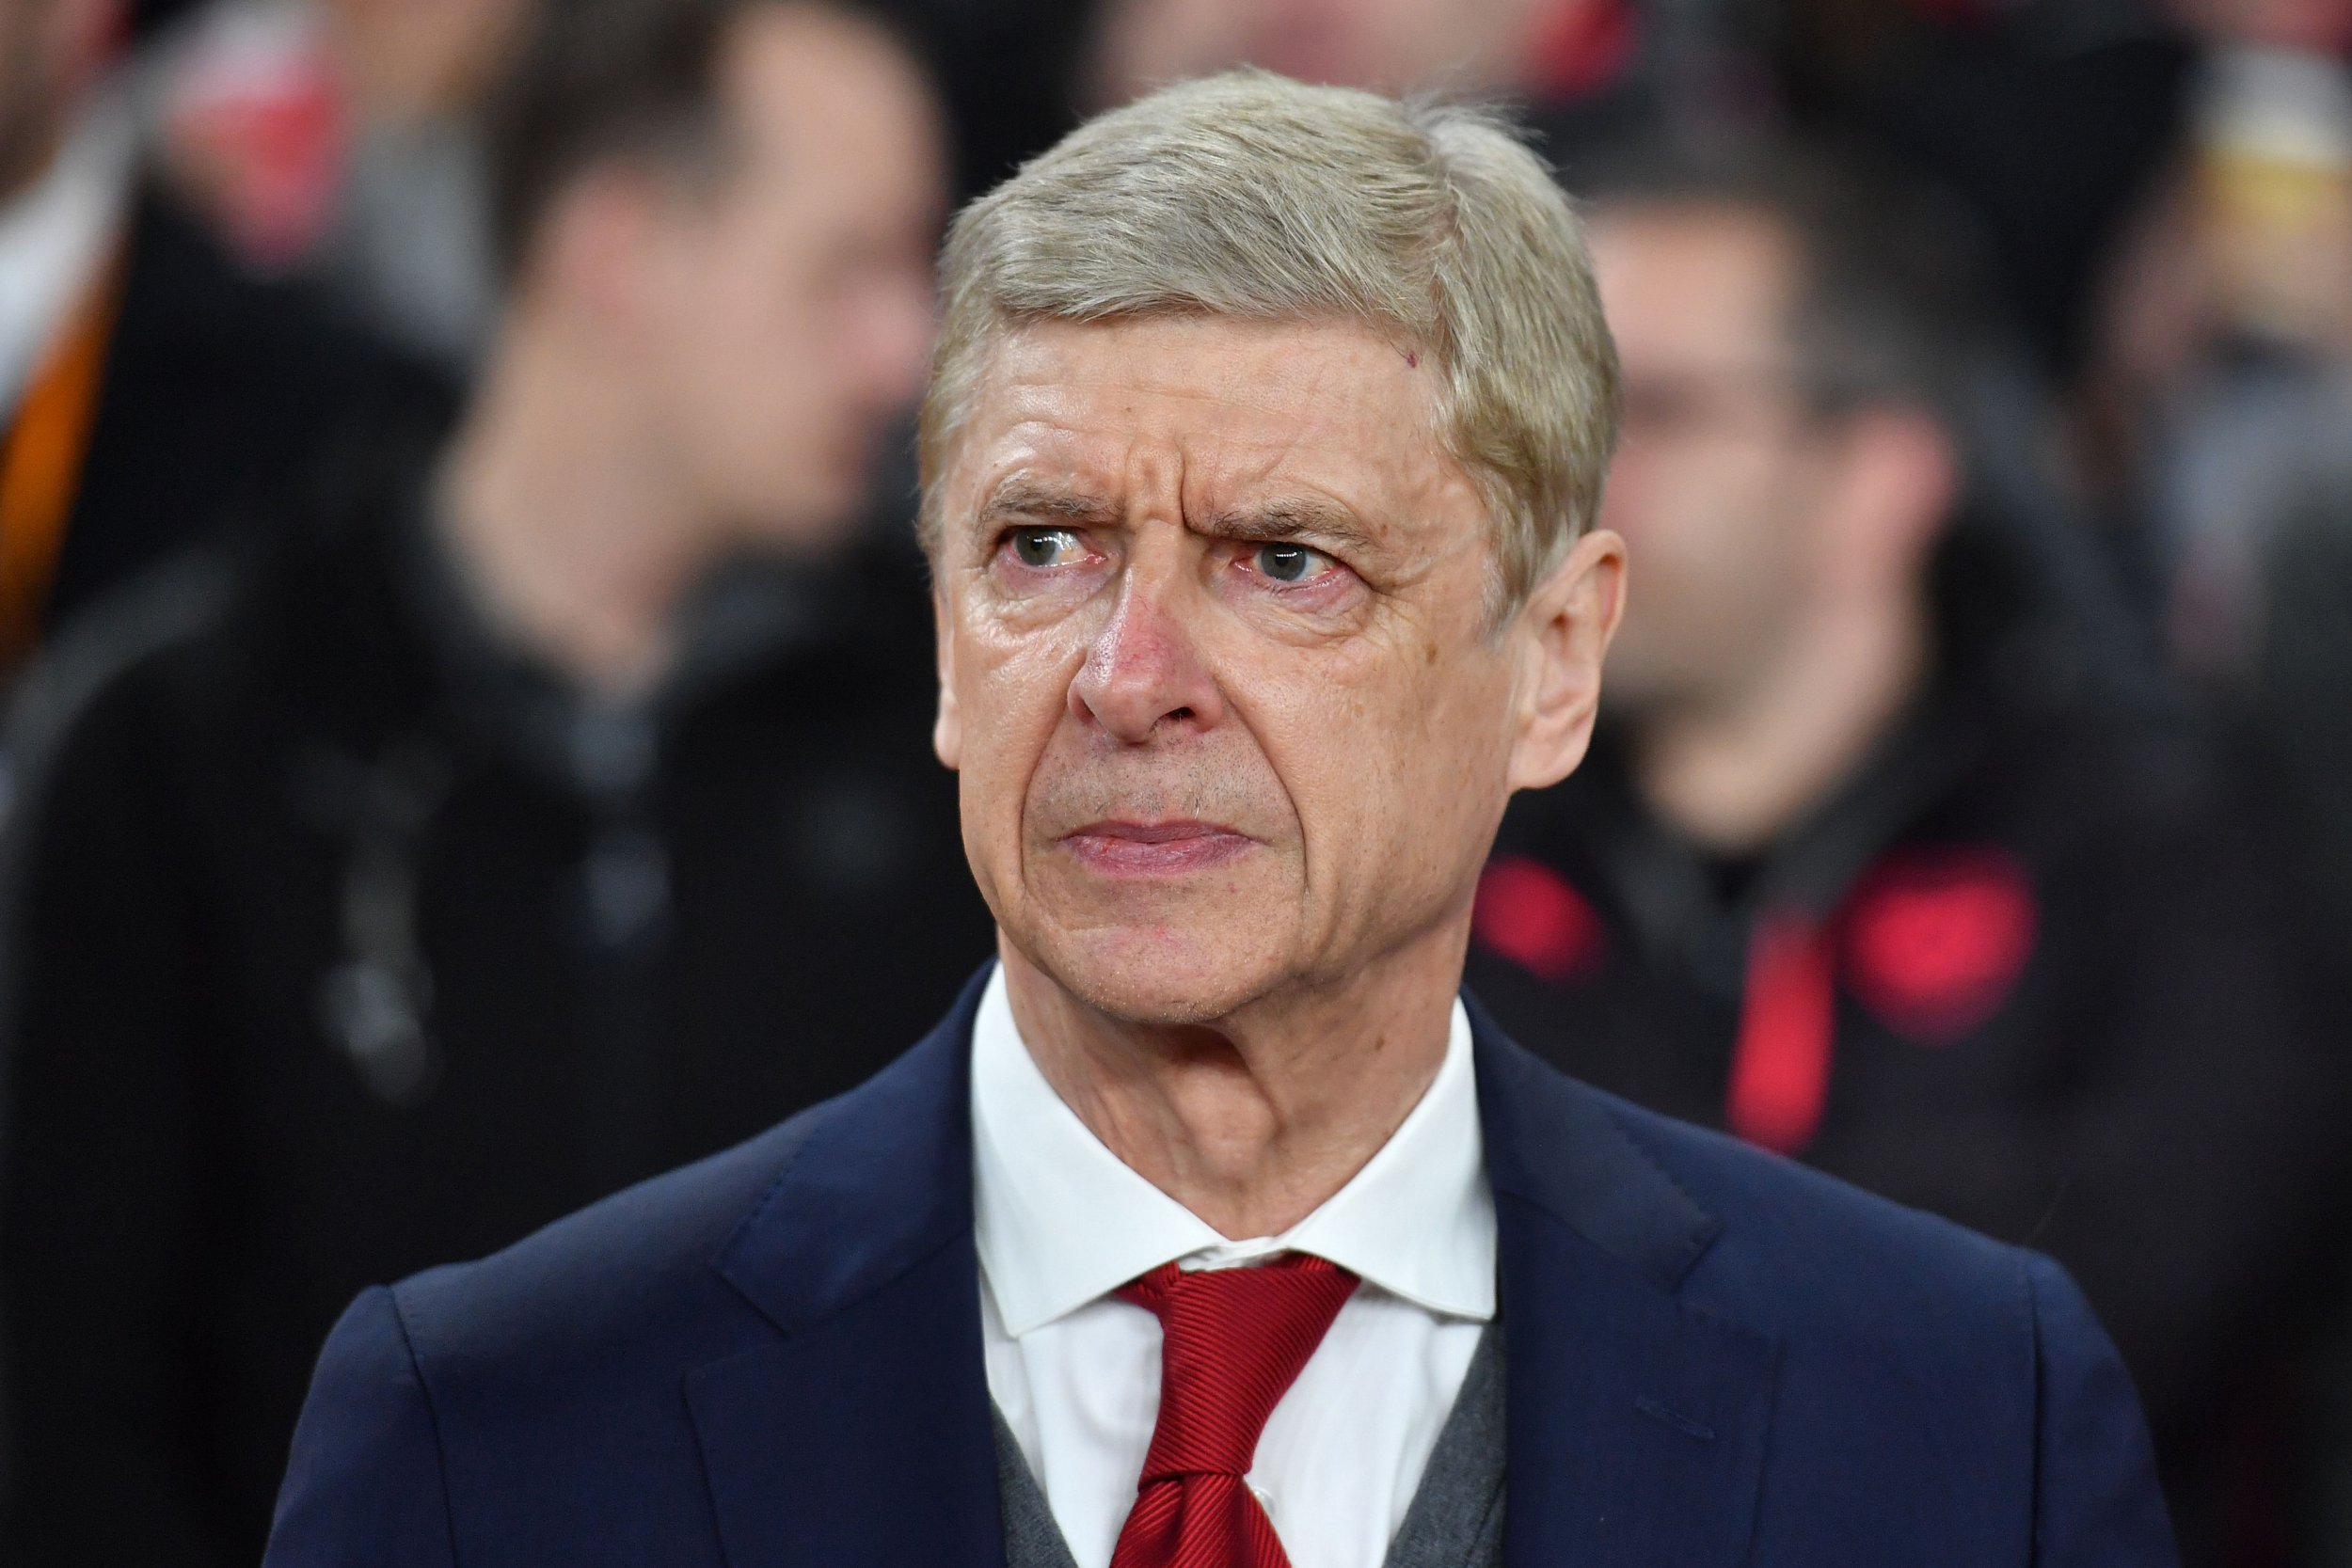 Rafa Benitez a 'great fit' to replace Arsene Wenger at Arsenal, says Ray Parlour